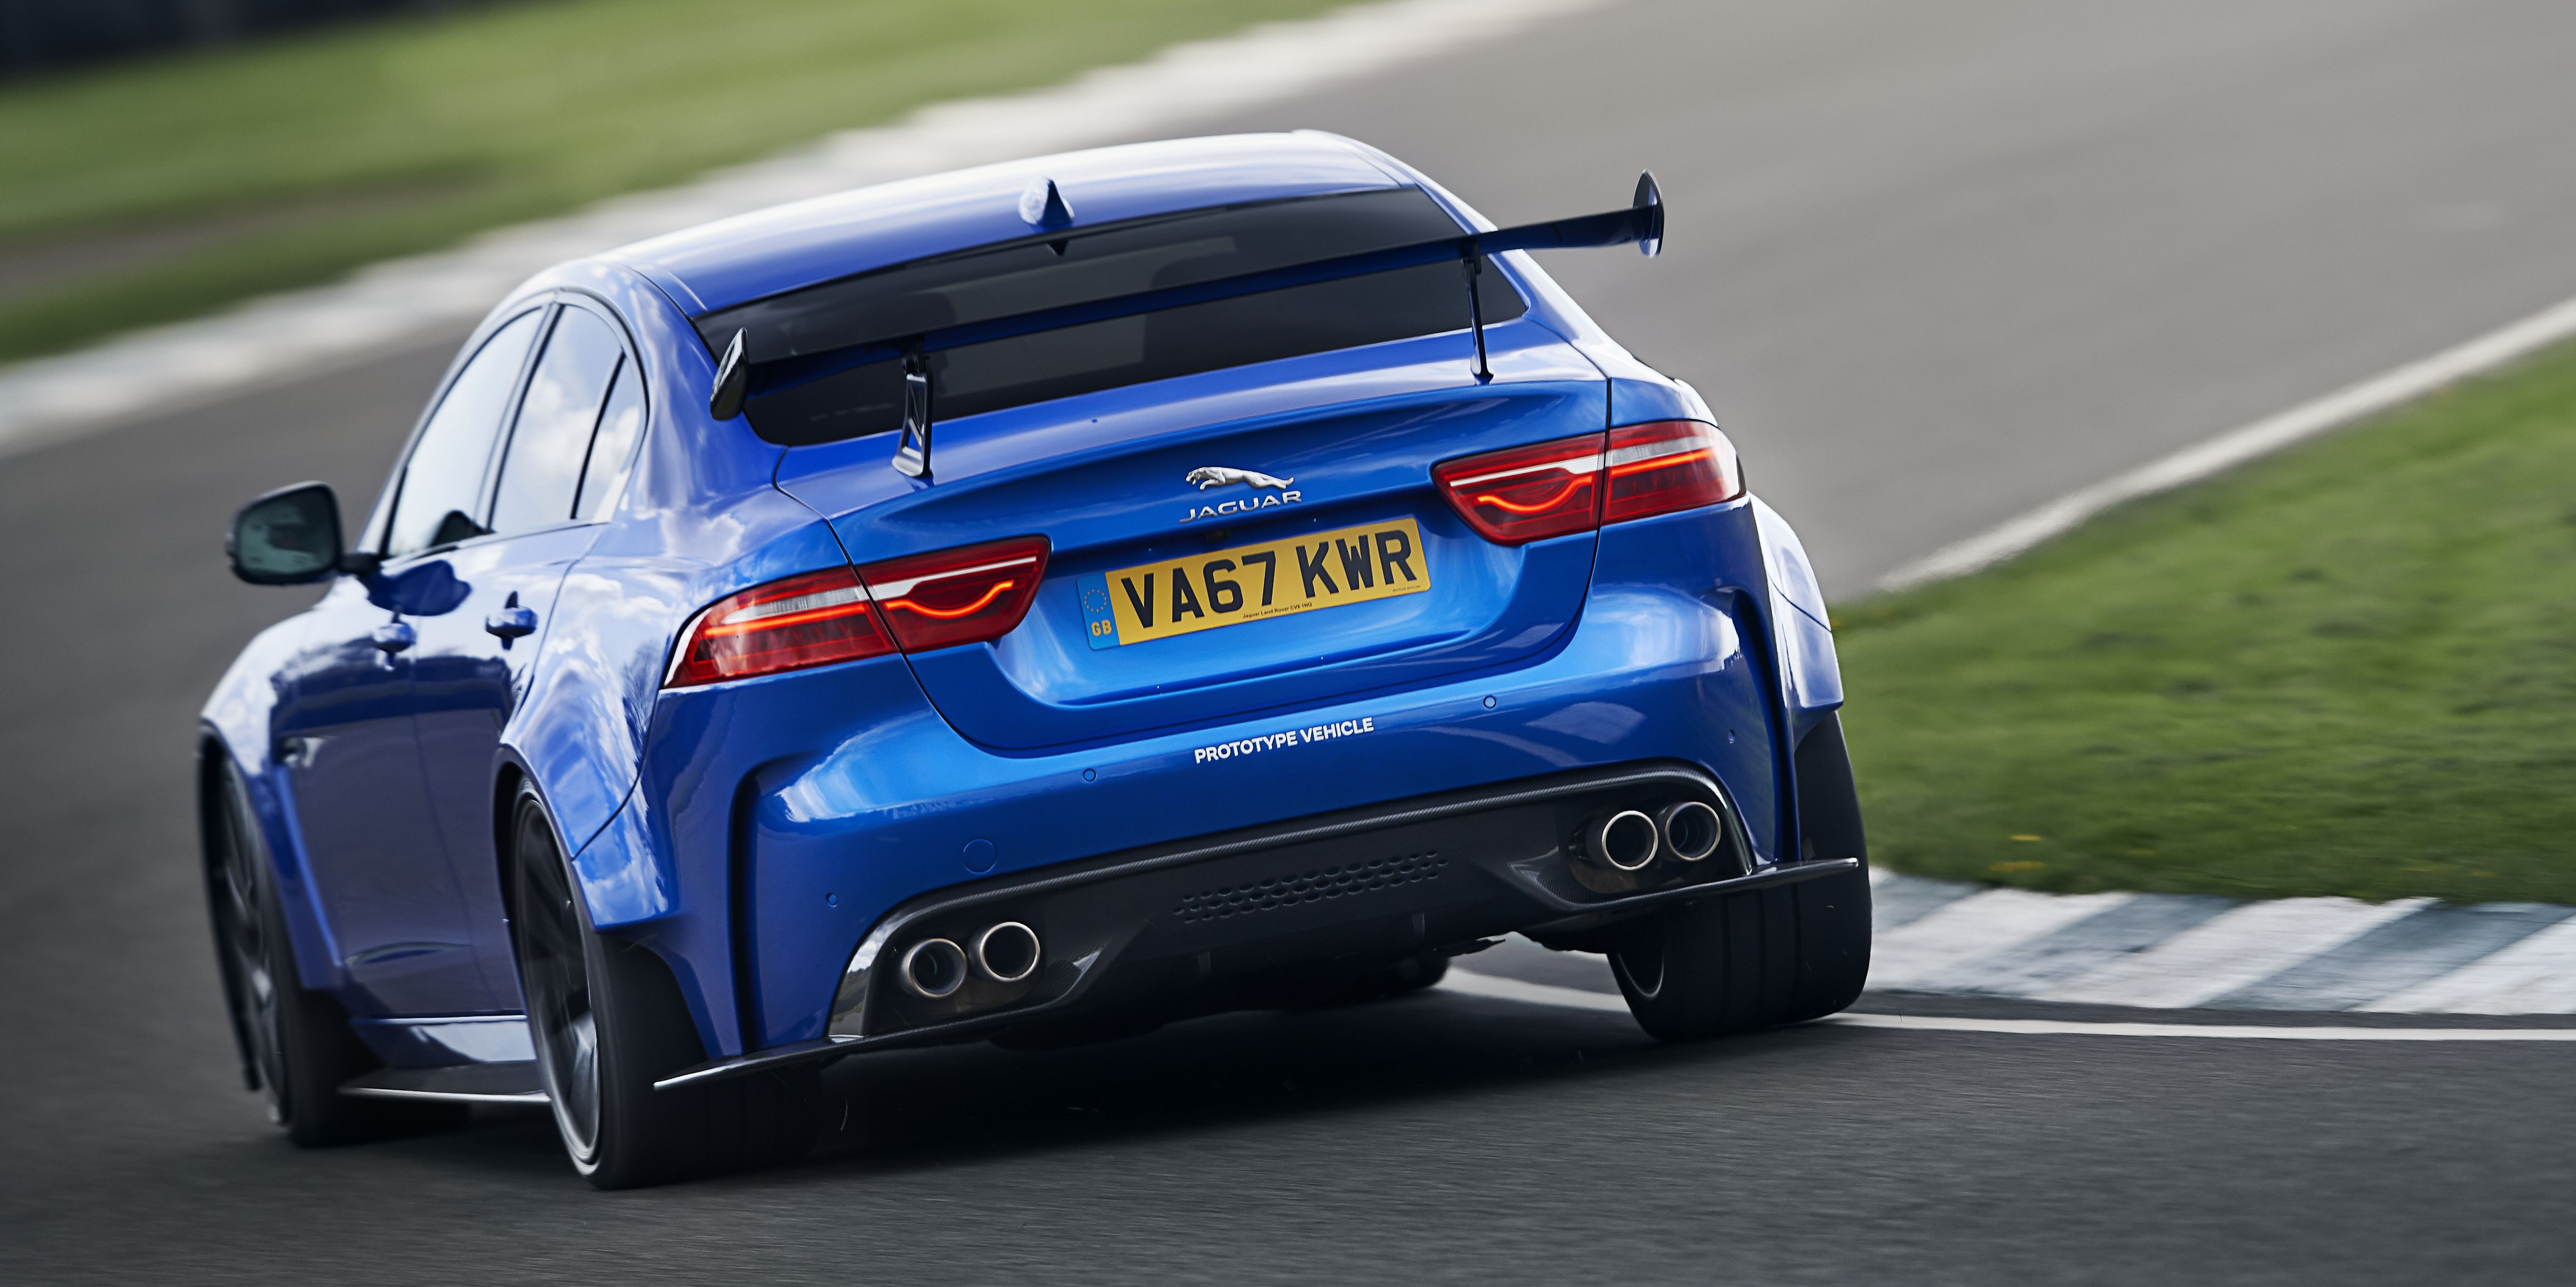 The Jaguar XE SV Project 8 Is the Angriest-Sounding Sedan You Can Buy